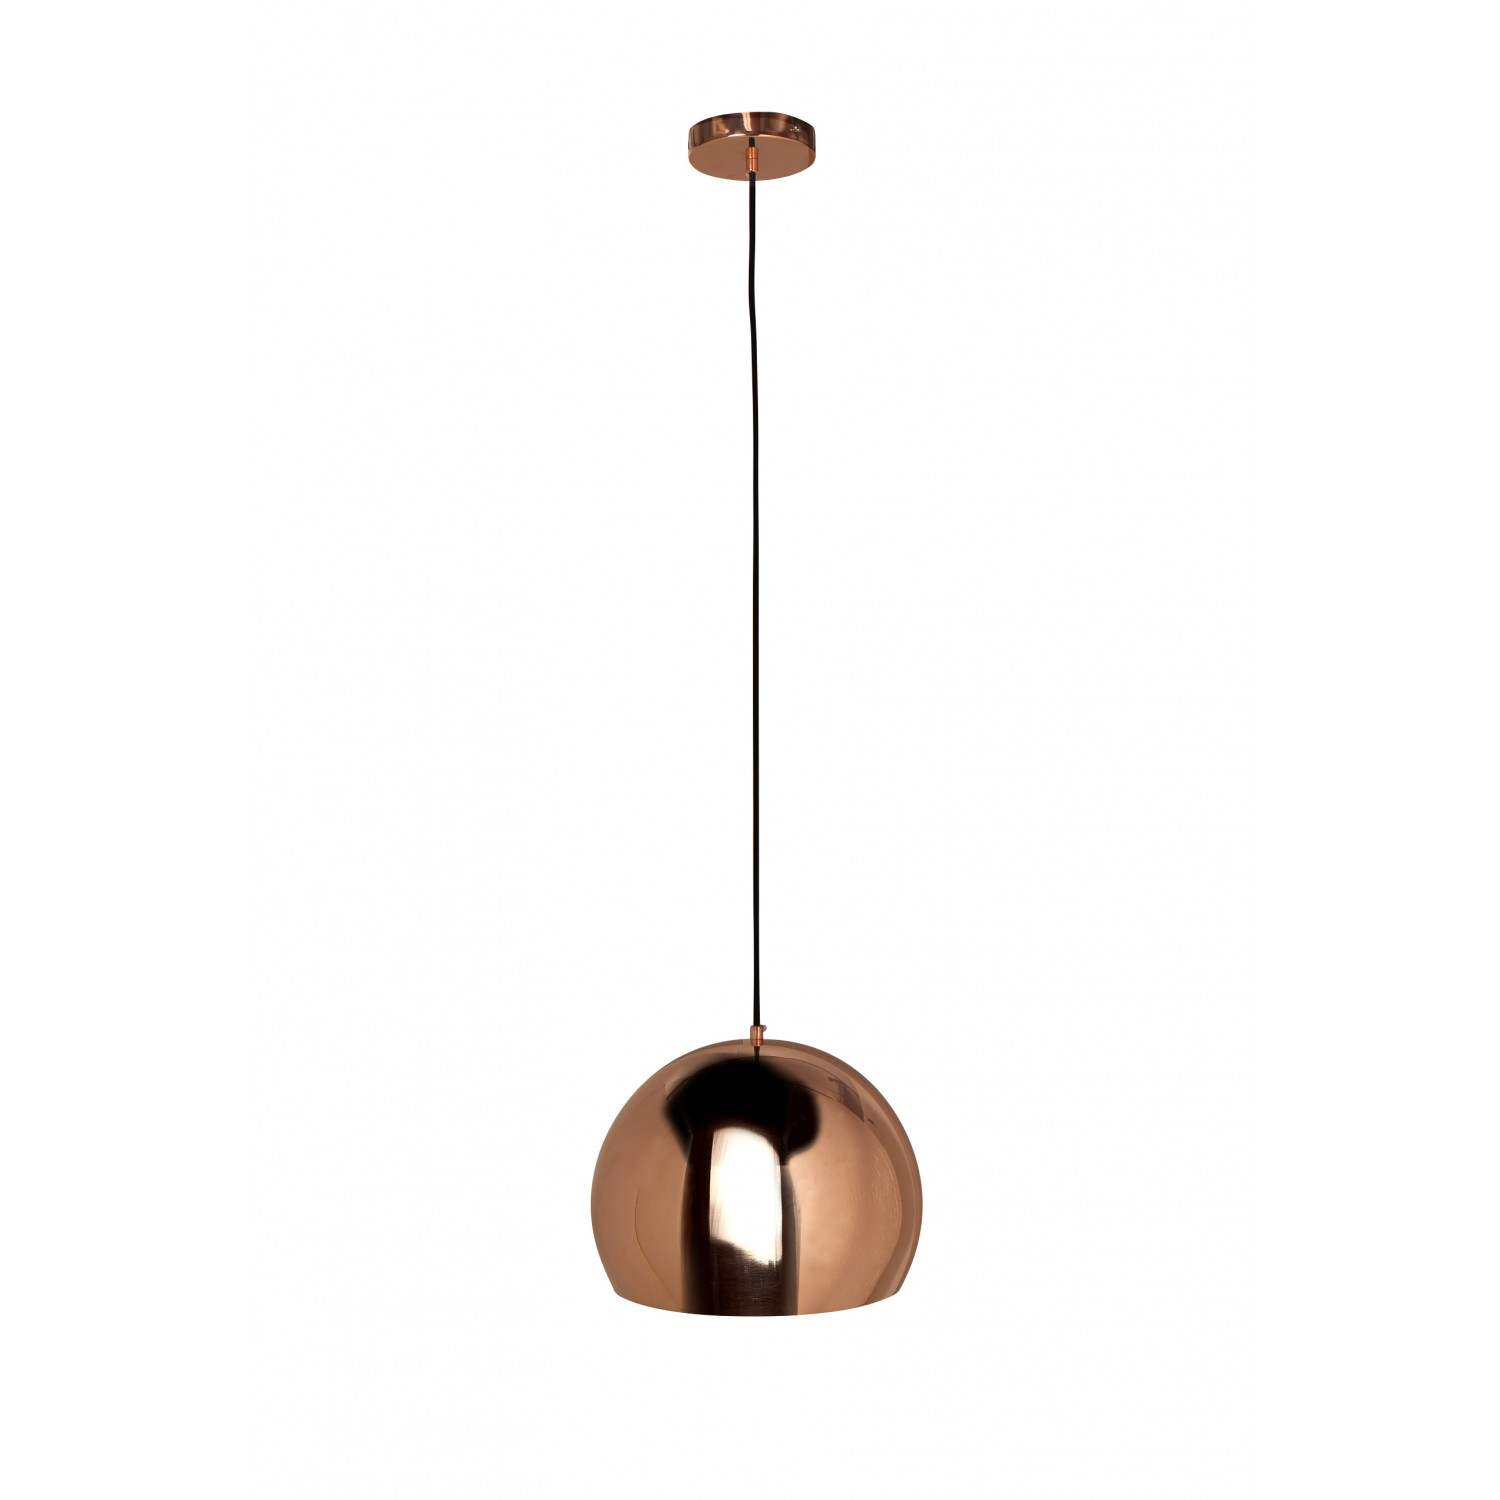 Lampe Suspension Cuivre Suspension Boule Cuivre Noxe